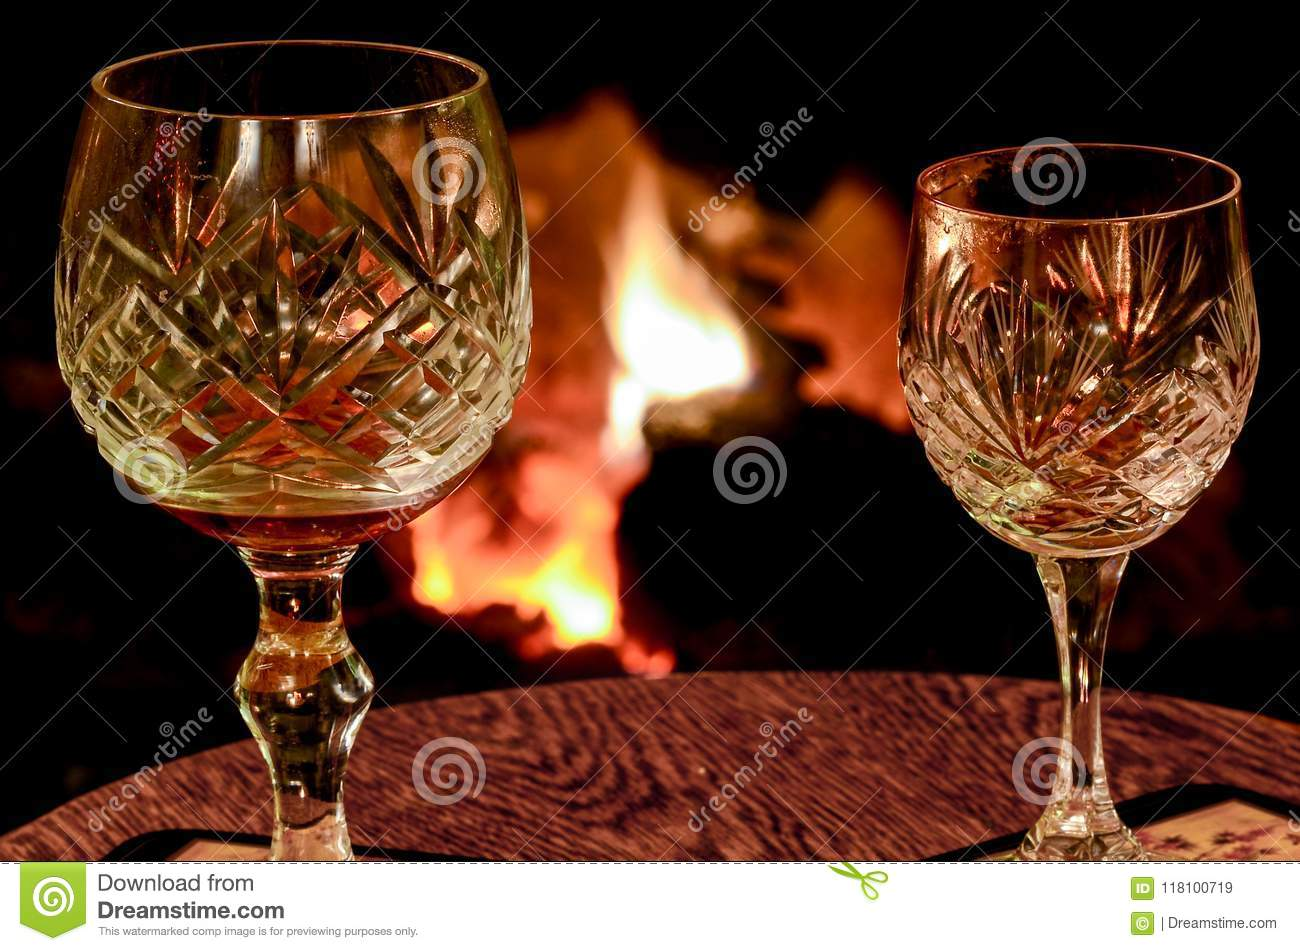 Two crystal wine glasses on a wooden table placed in front of a